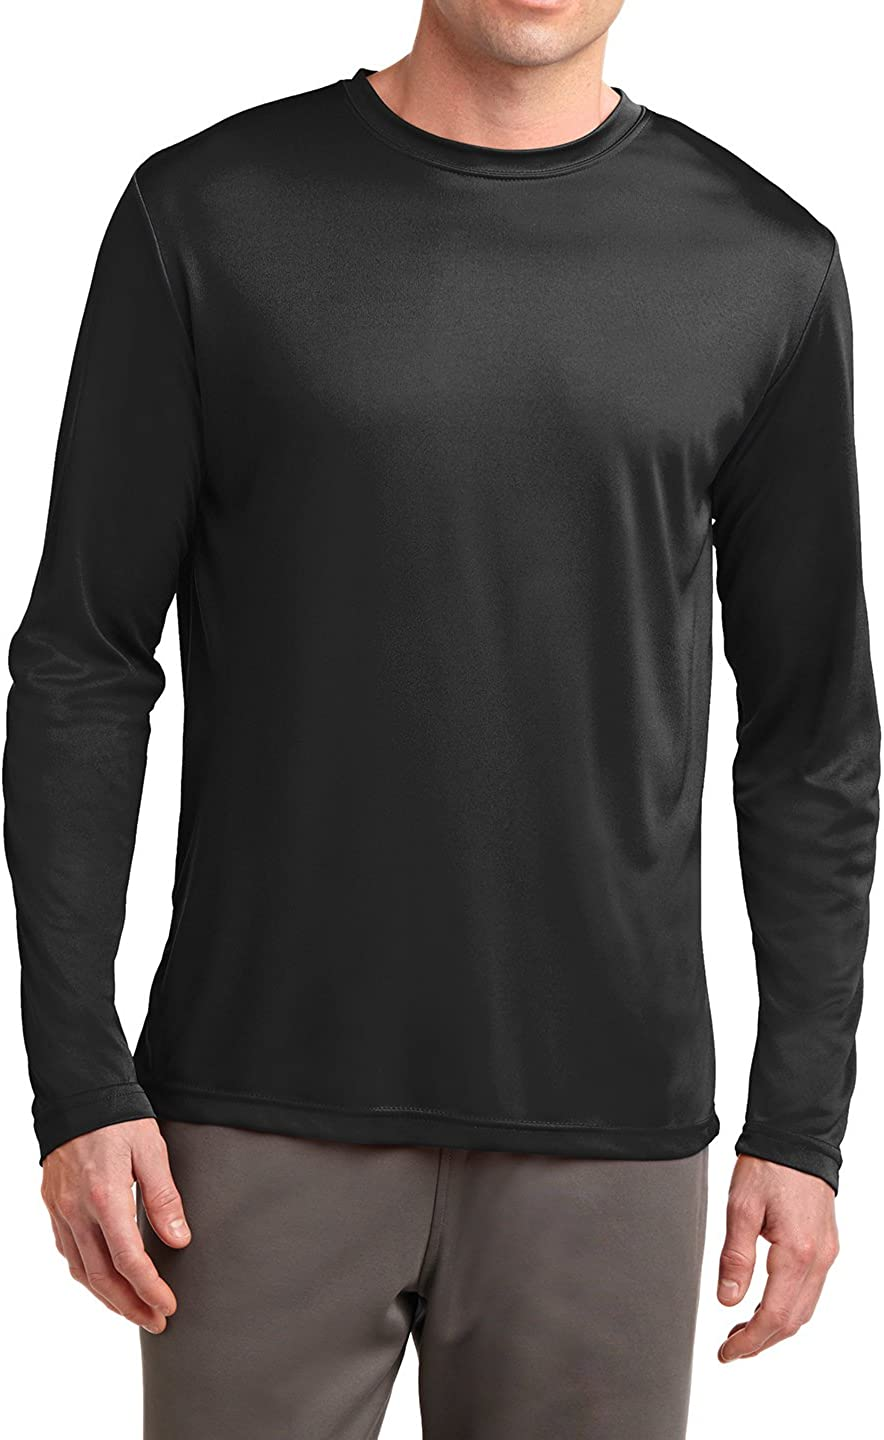 Mafoose Men's Lightweight Tall Long Sleeve PosiCharge Competitor Tee